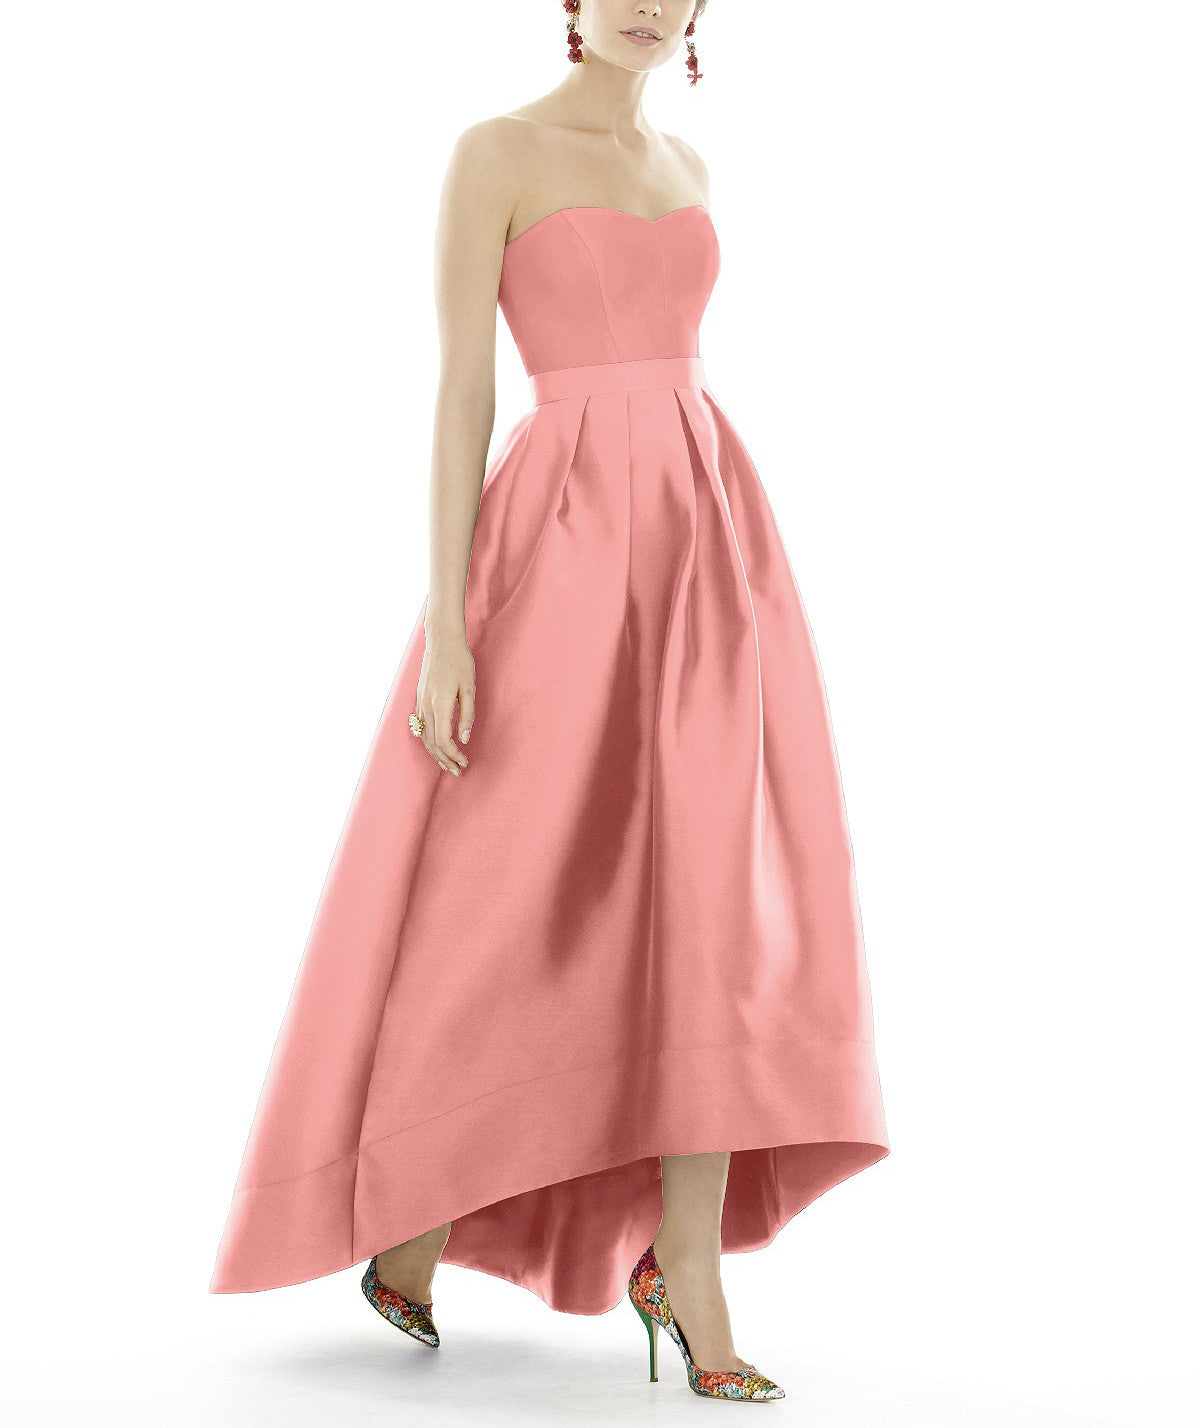 Alfred sung style d699 bridesmaid dress brideside alfred sung style d699 ombrellifo Choice Image